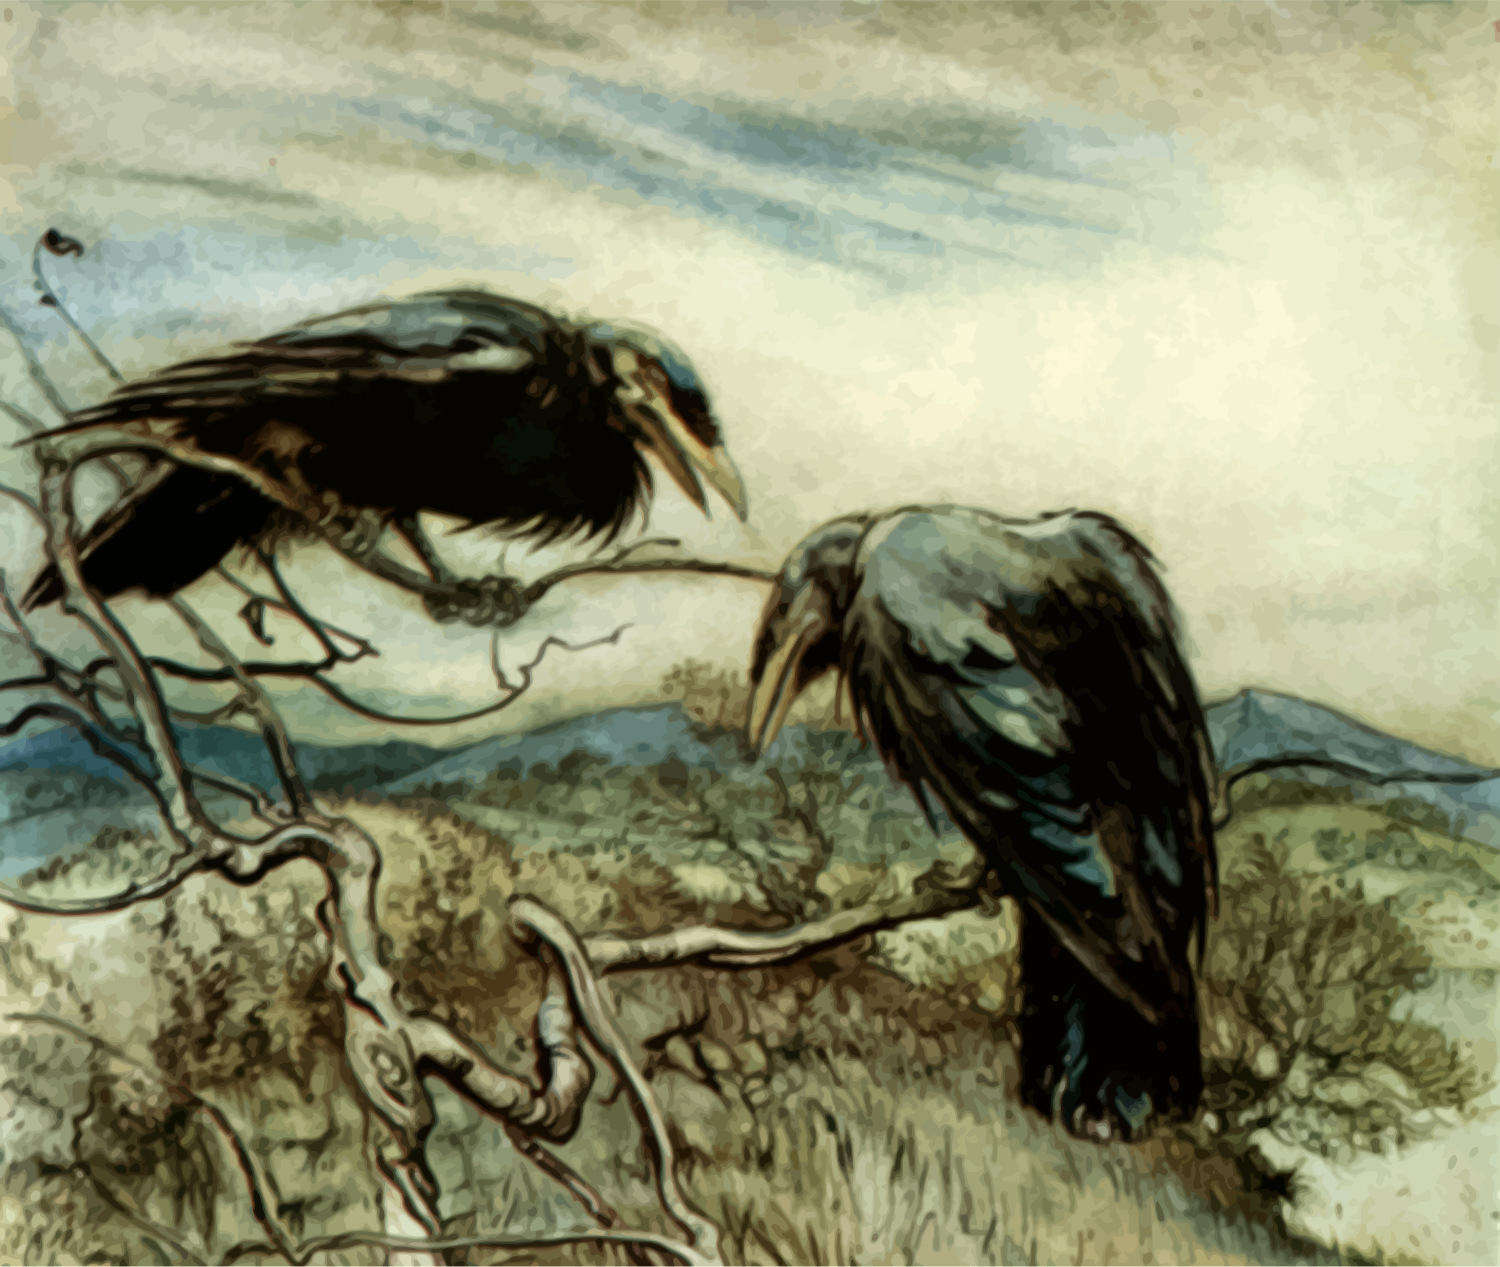 Crows, by Firkin, openclipart.org, from a public domain image on Wikimedia Commons by Arthur Rackham